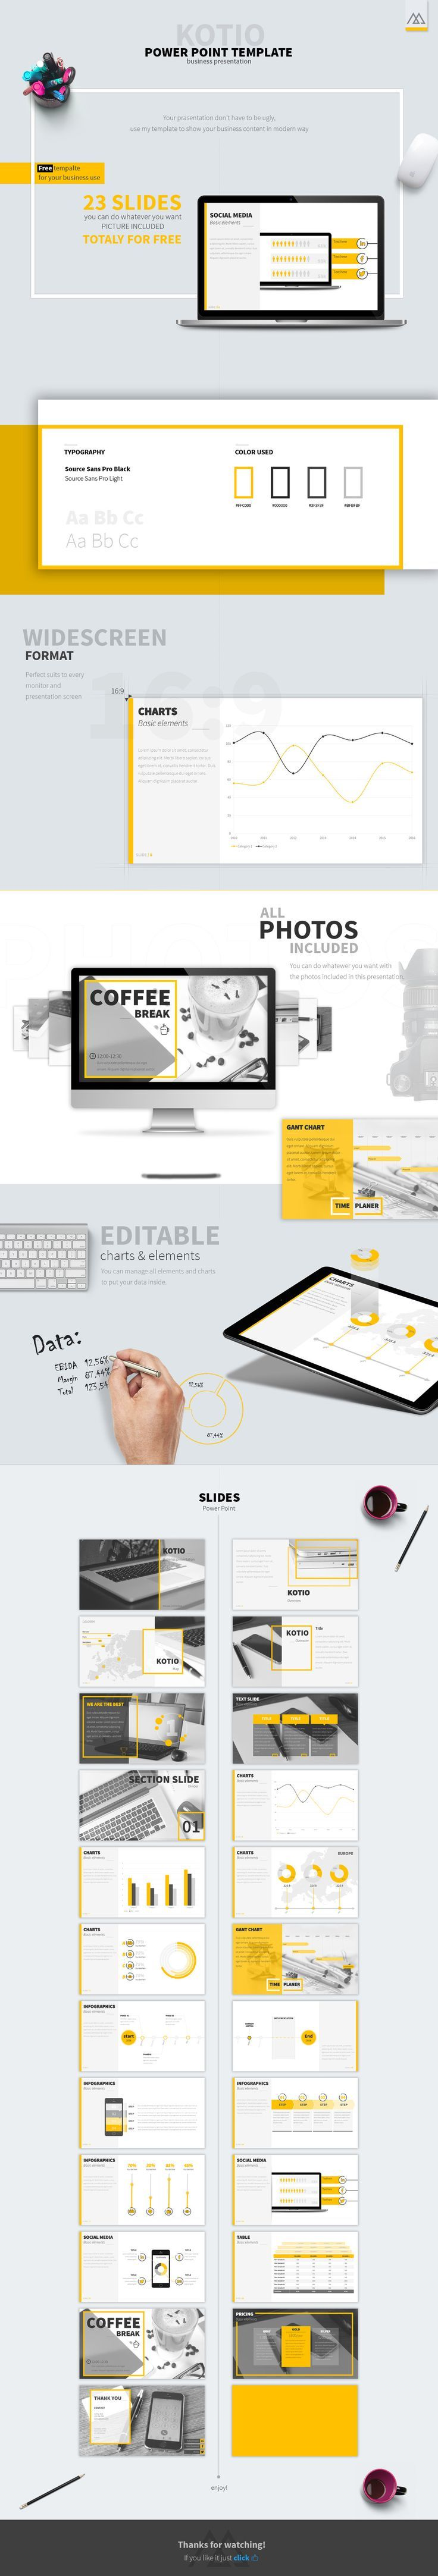 96 best free ppt template images on pinterest 4 free powerpoint templates free ppt template free keynote template download toneelgroepblik